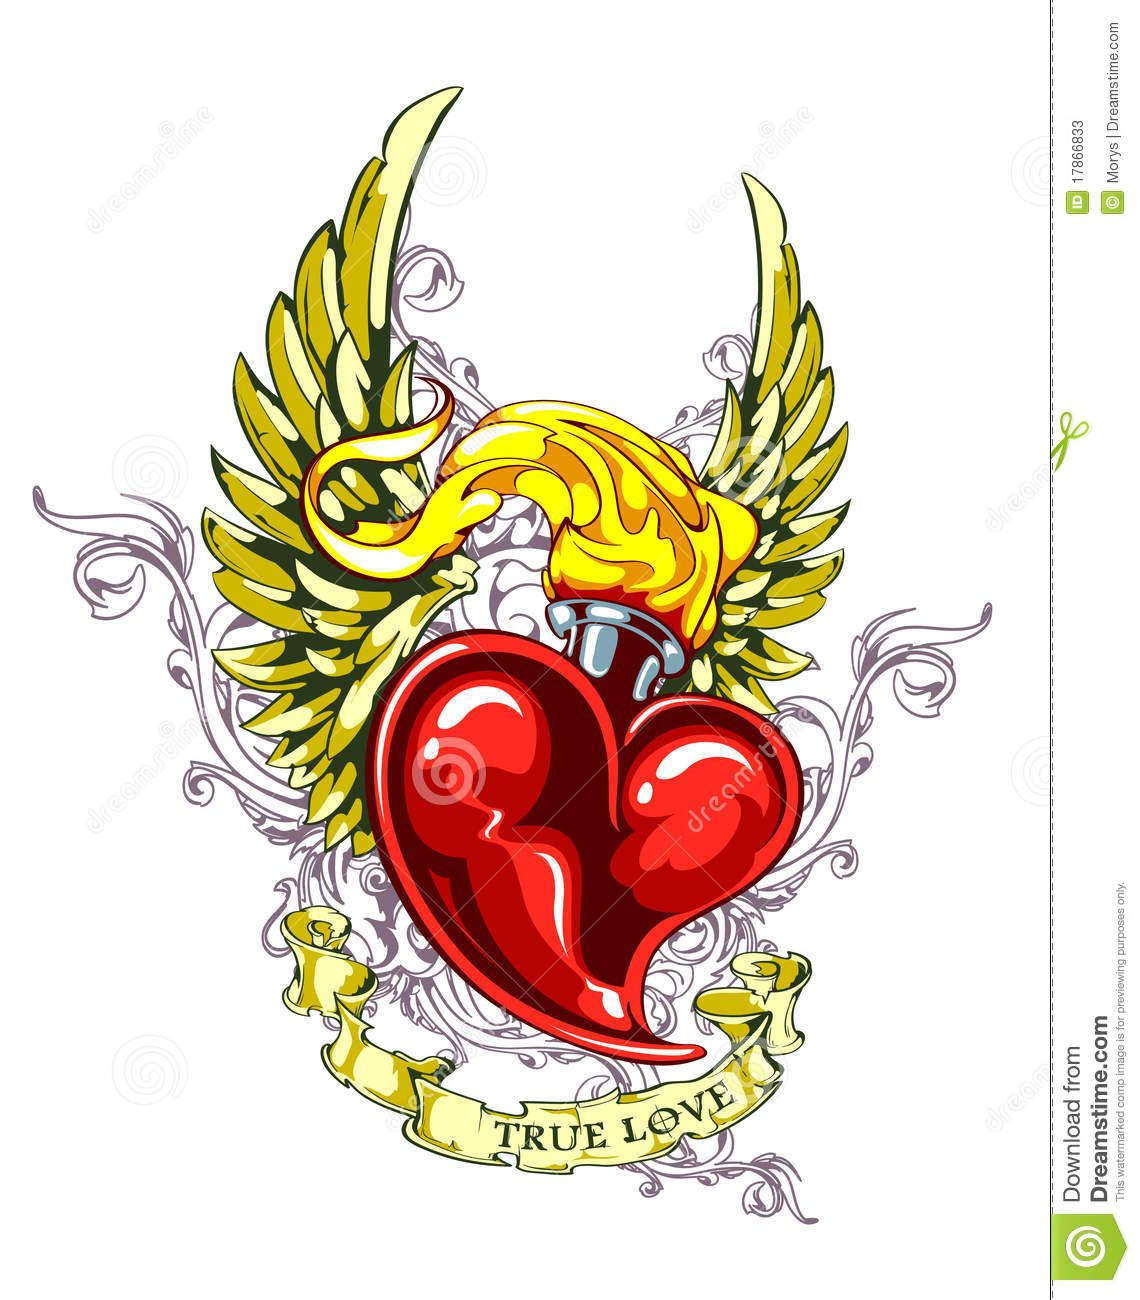 vintage heart tattoo designs - Google Search | ink | Heart ...